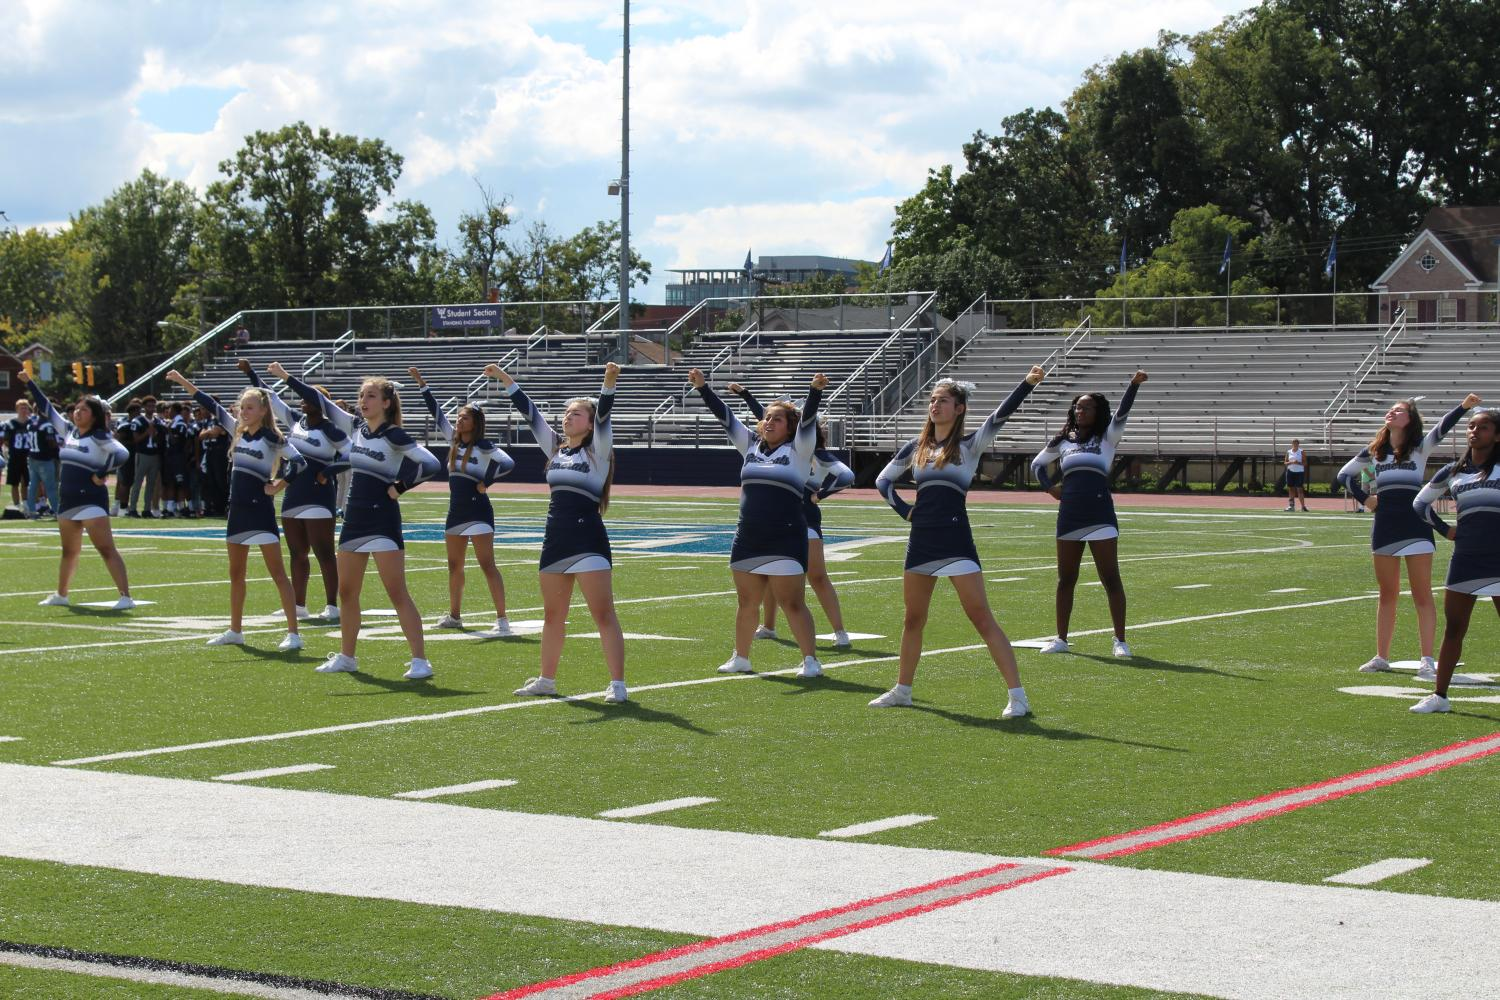 The varsity cheer team do a routine for the crowd at the pep rally